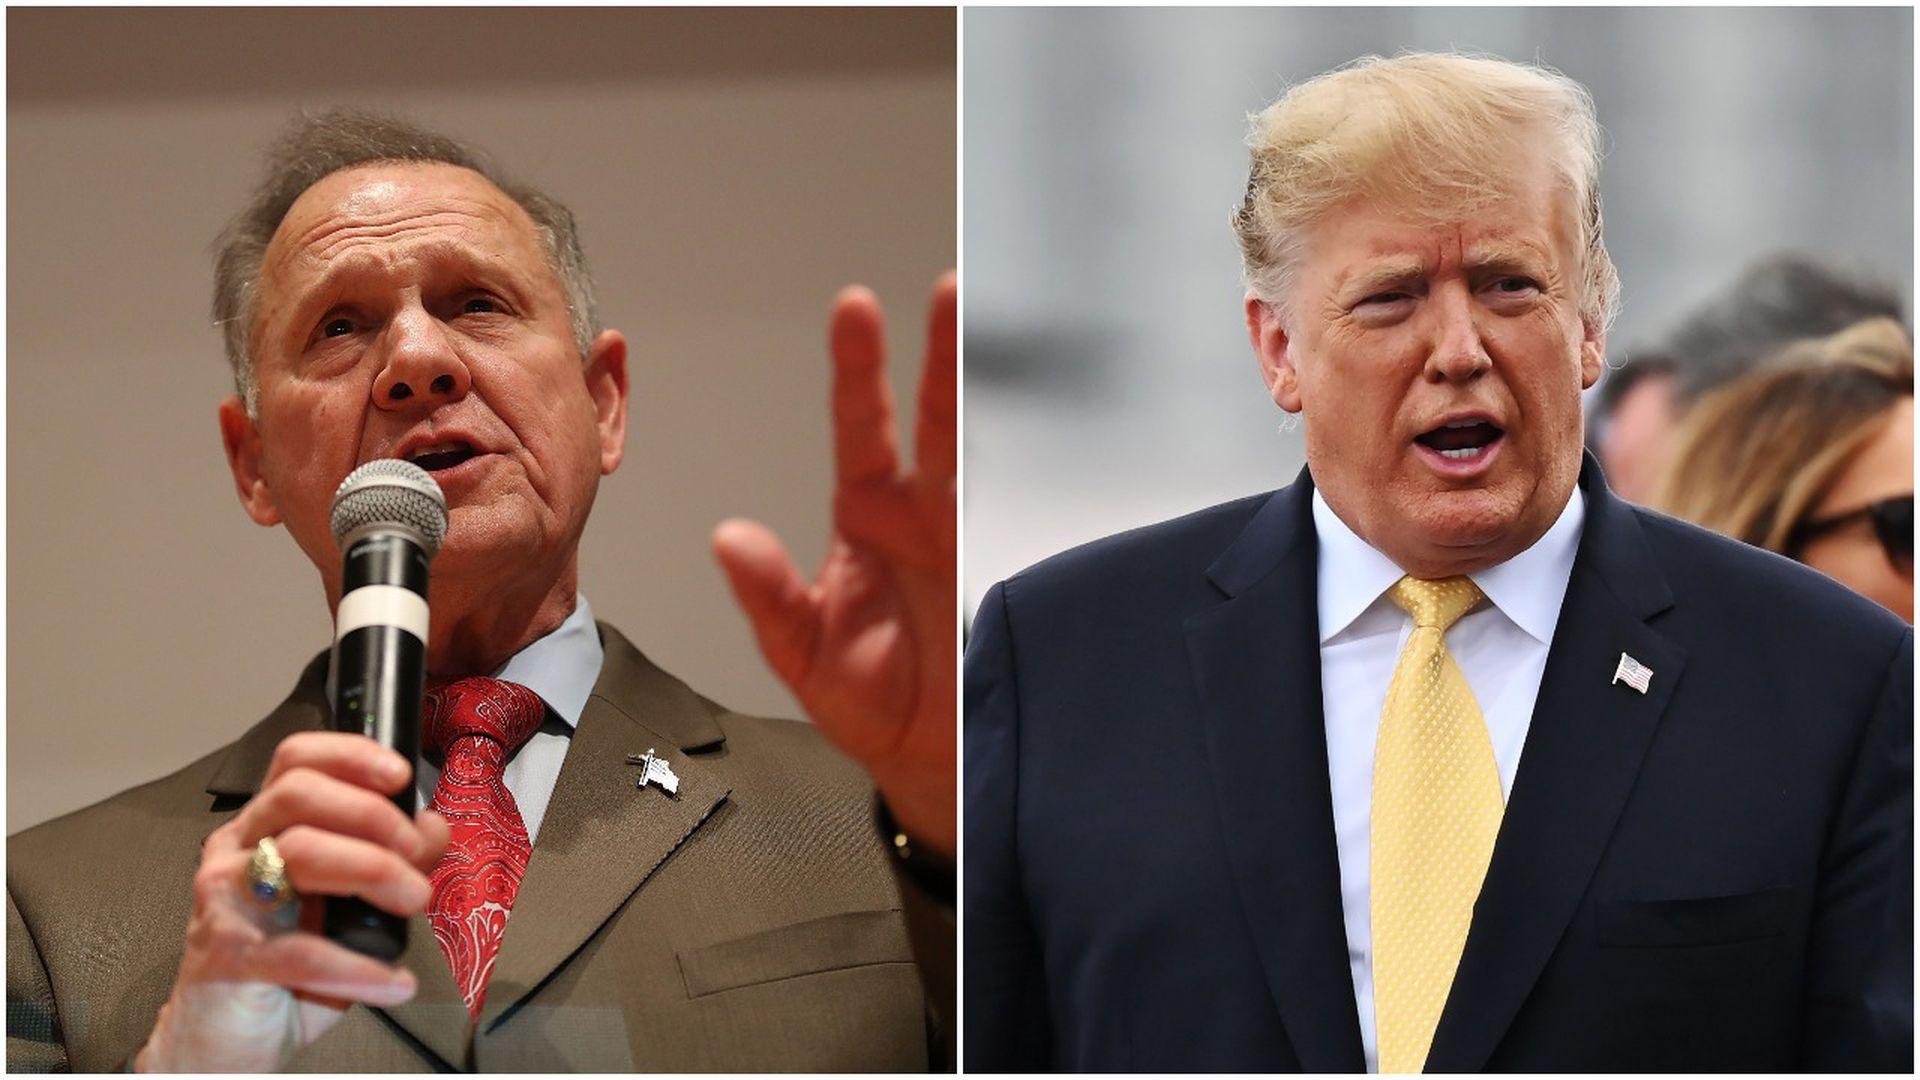 This image is a split screen of Moore and Trump.